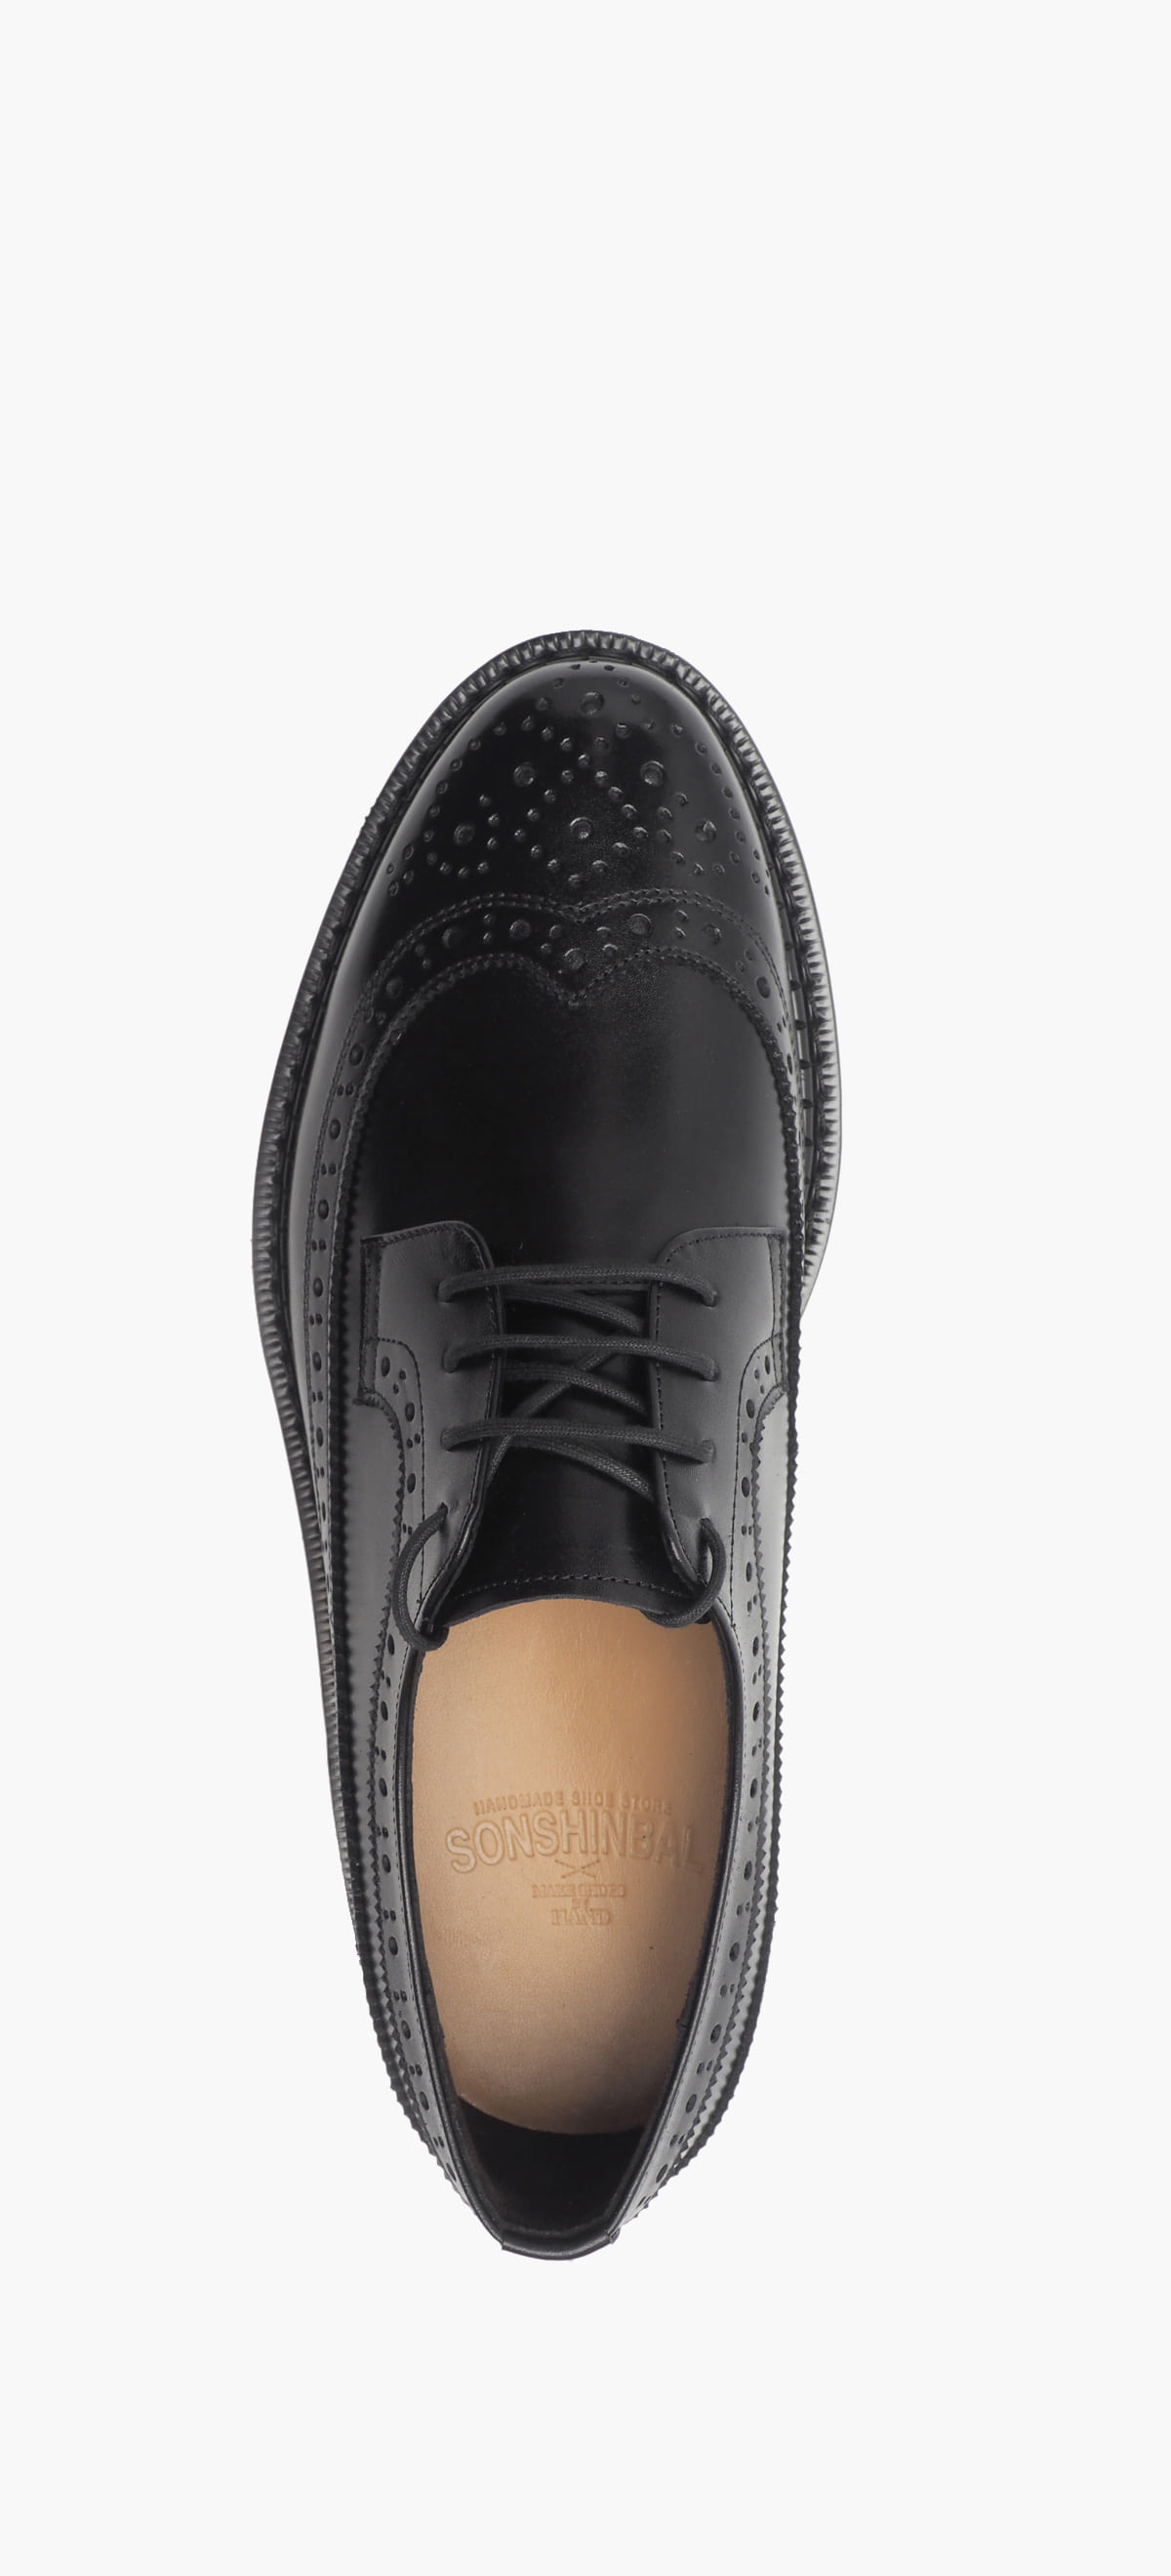 Wing Tip 0027-100 Black Kip